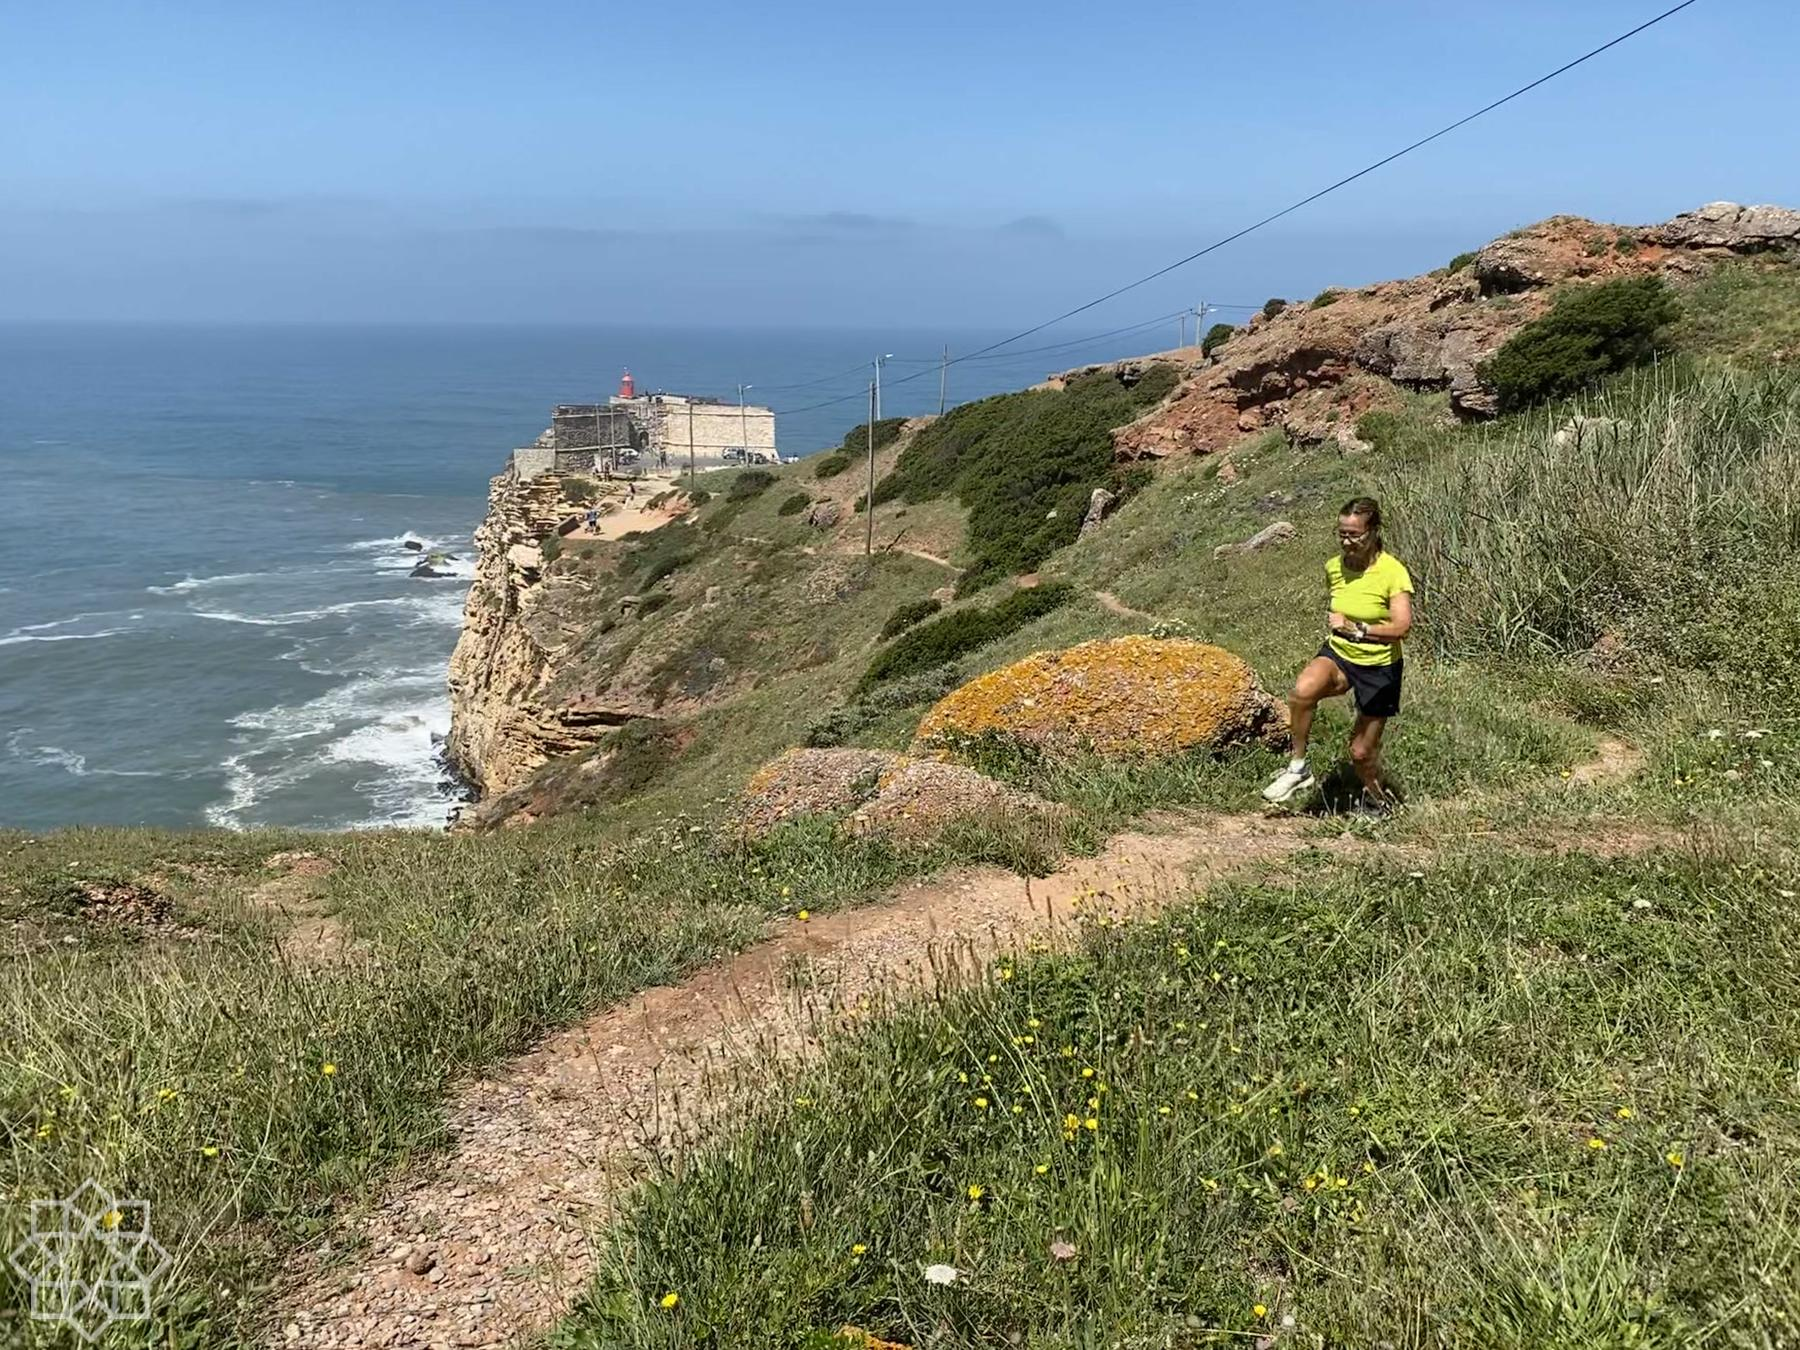 Best jogging and hiking in Nazaré